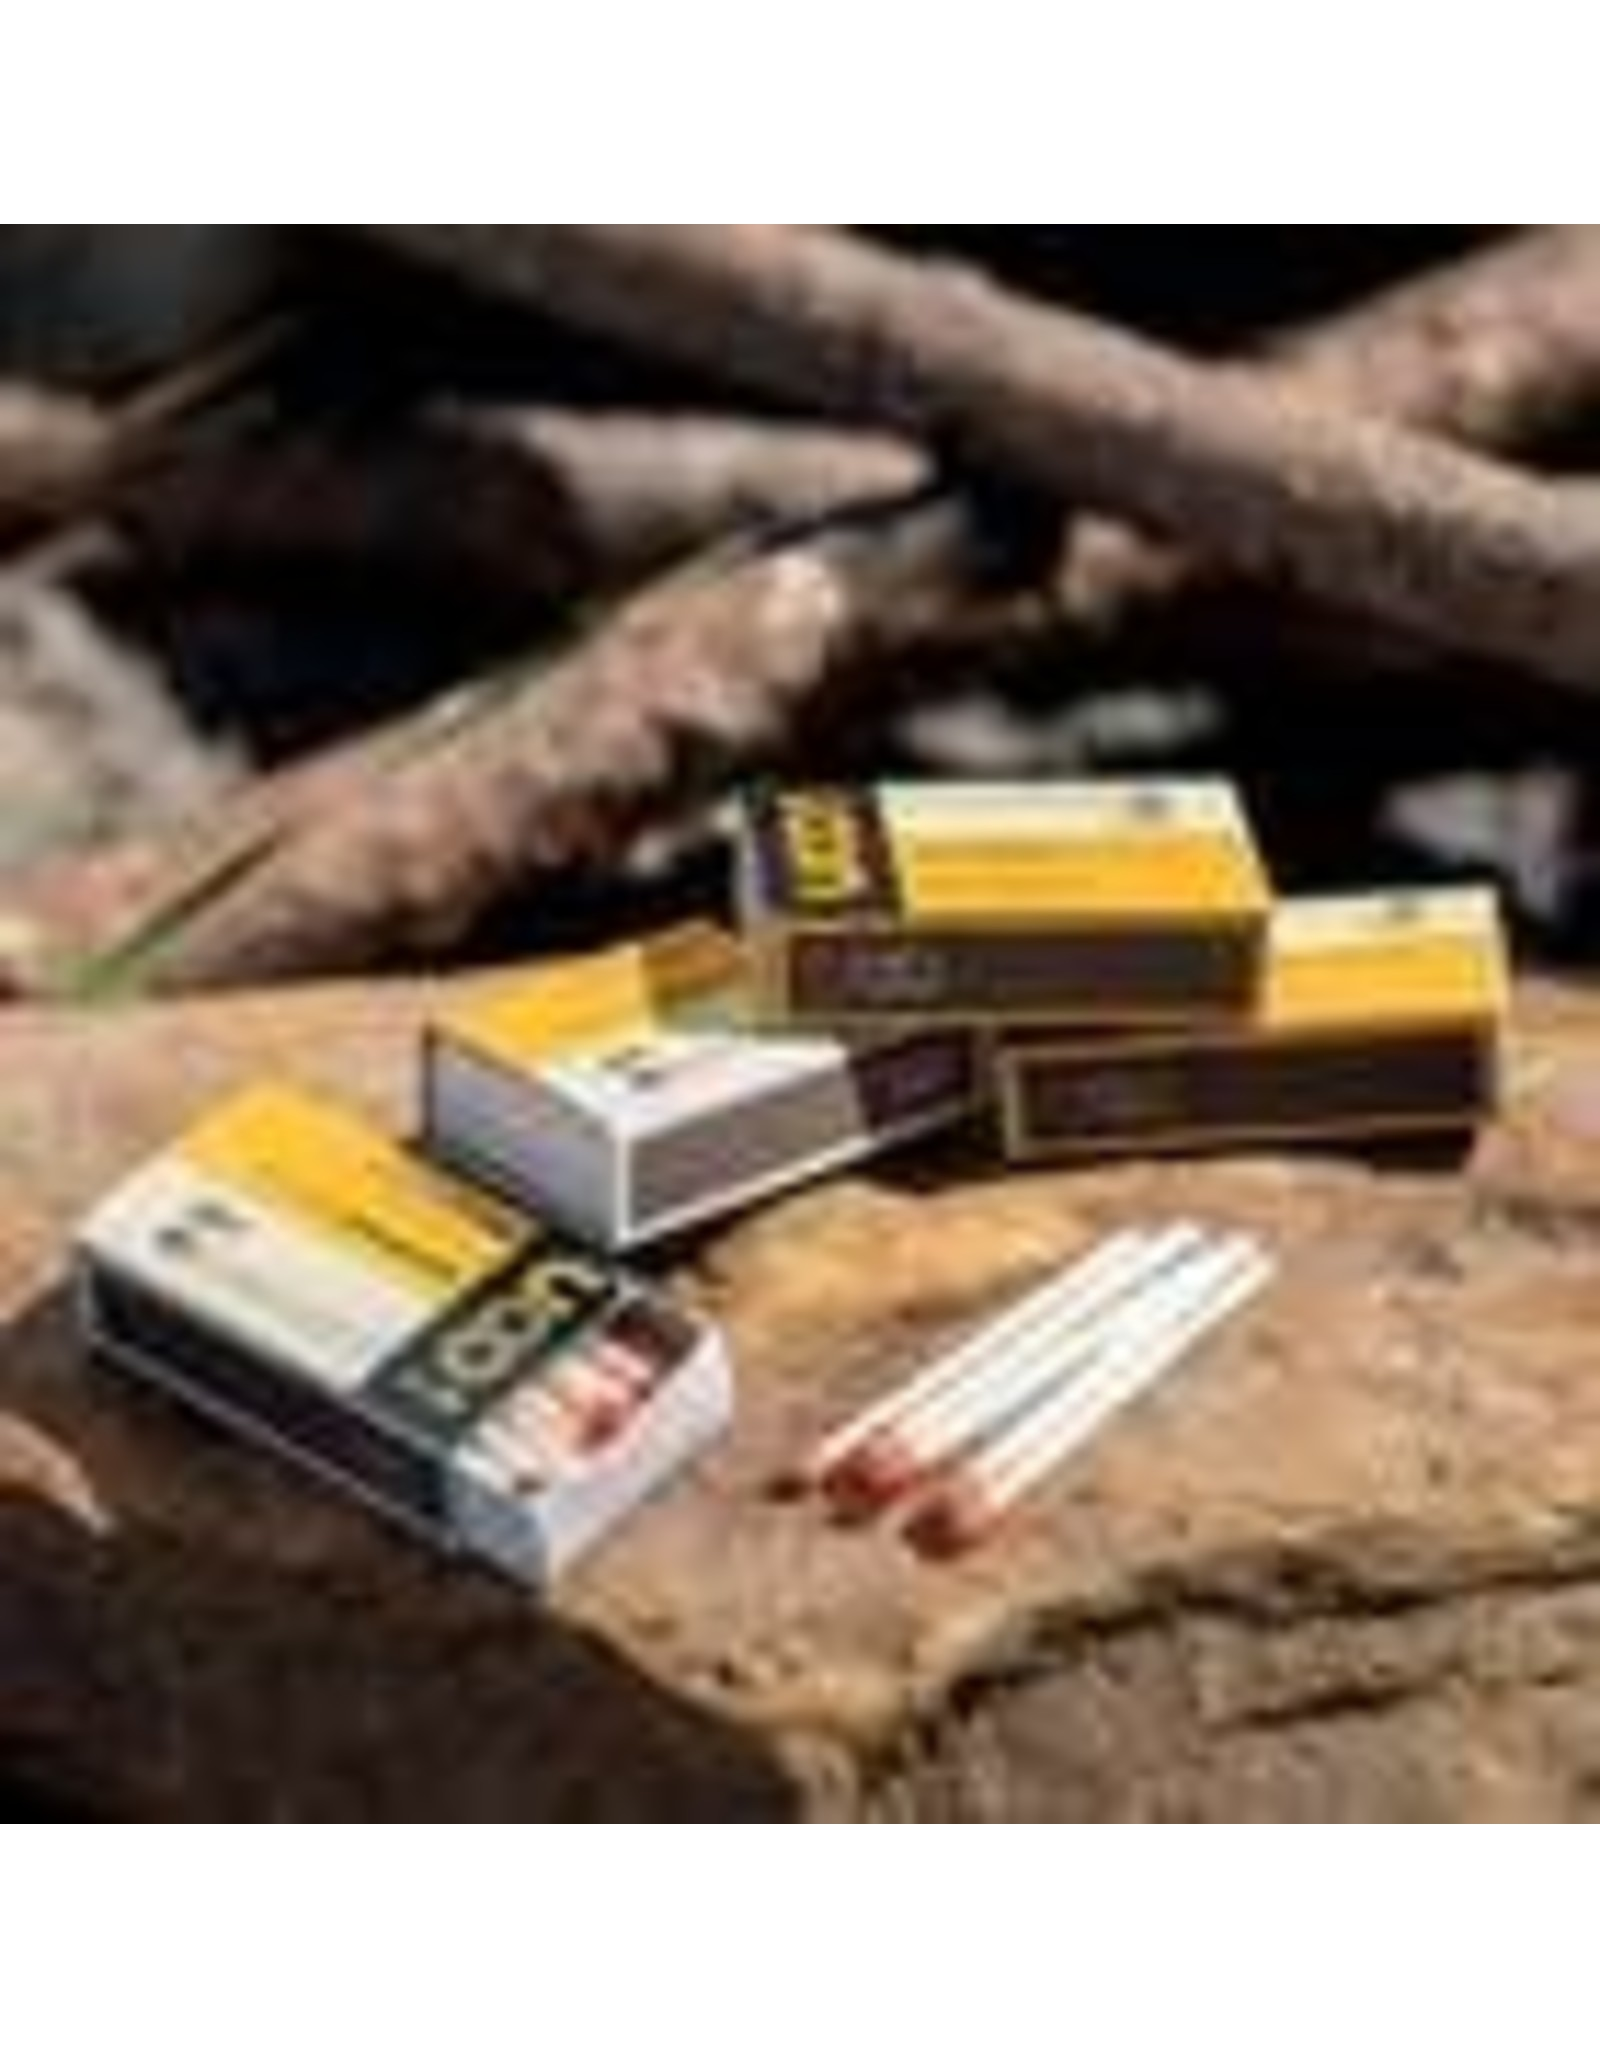 Elite Forces Waterproof Matches